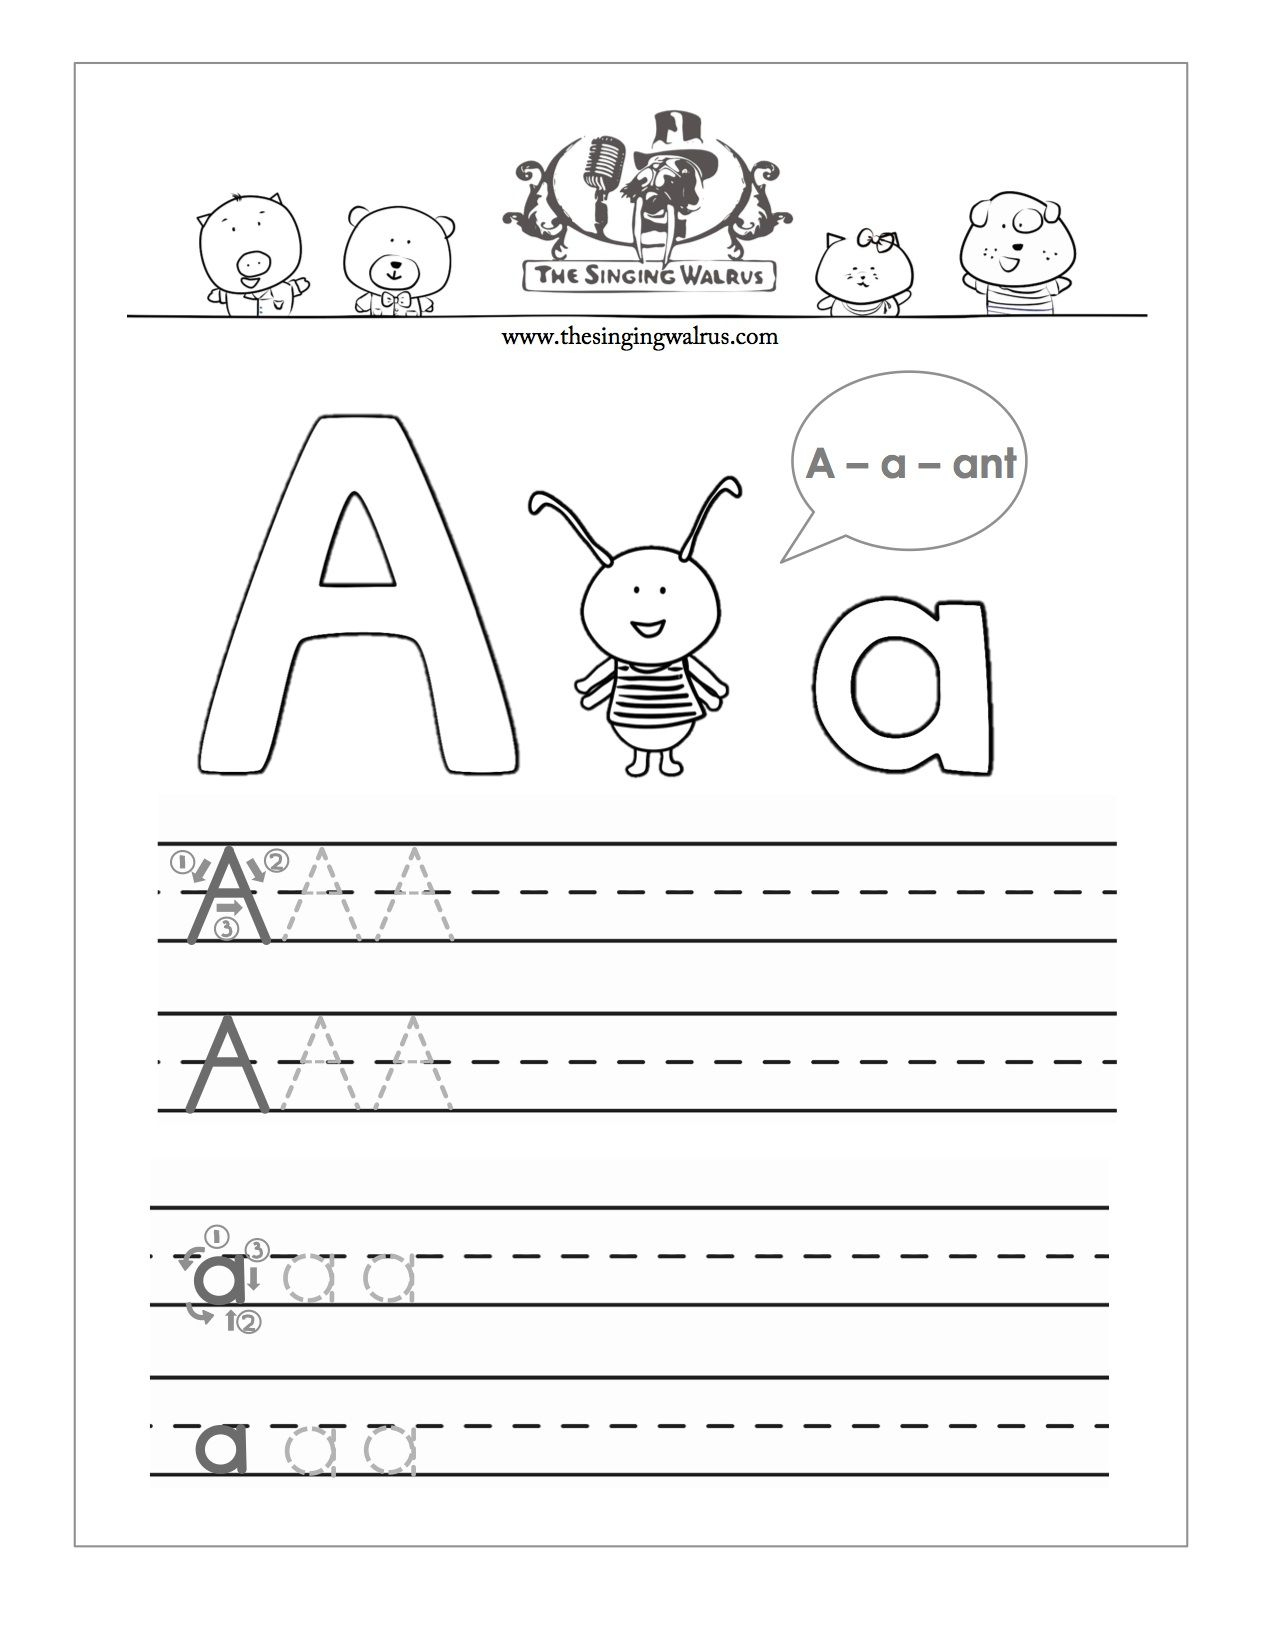 Free Printable Letter A Practice Sheet For Kids, A Combination Of | Free Printable Letter Practice Worksheets